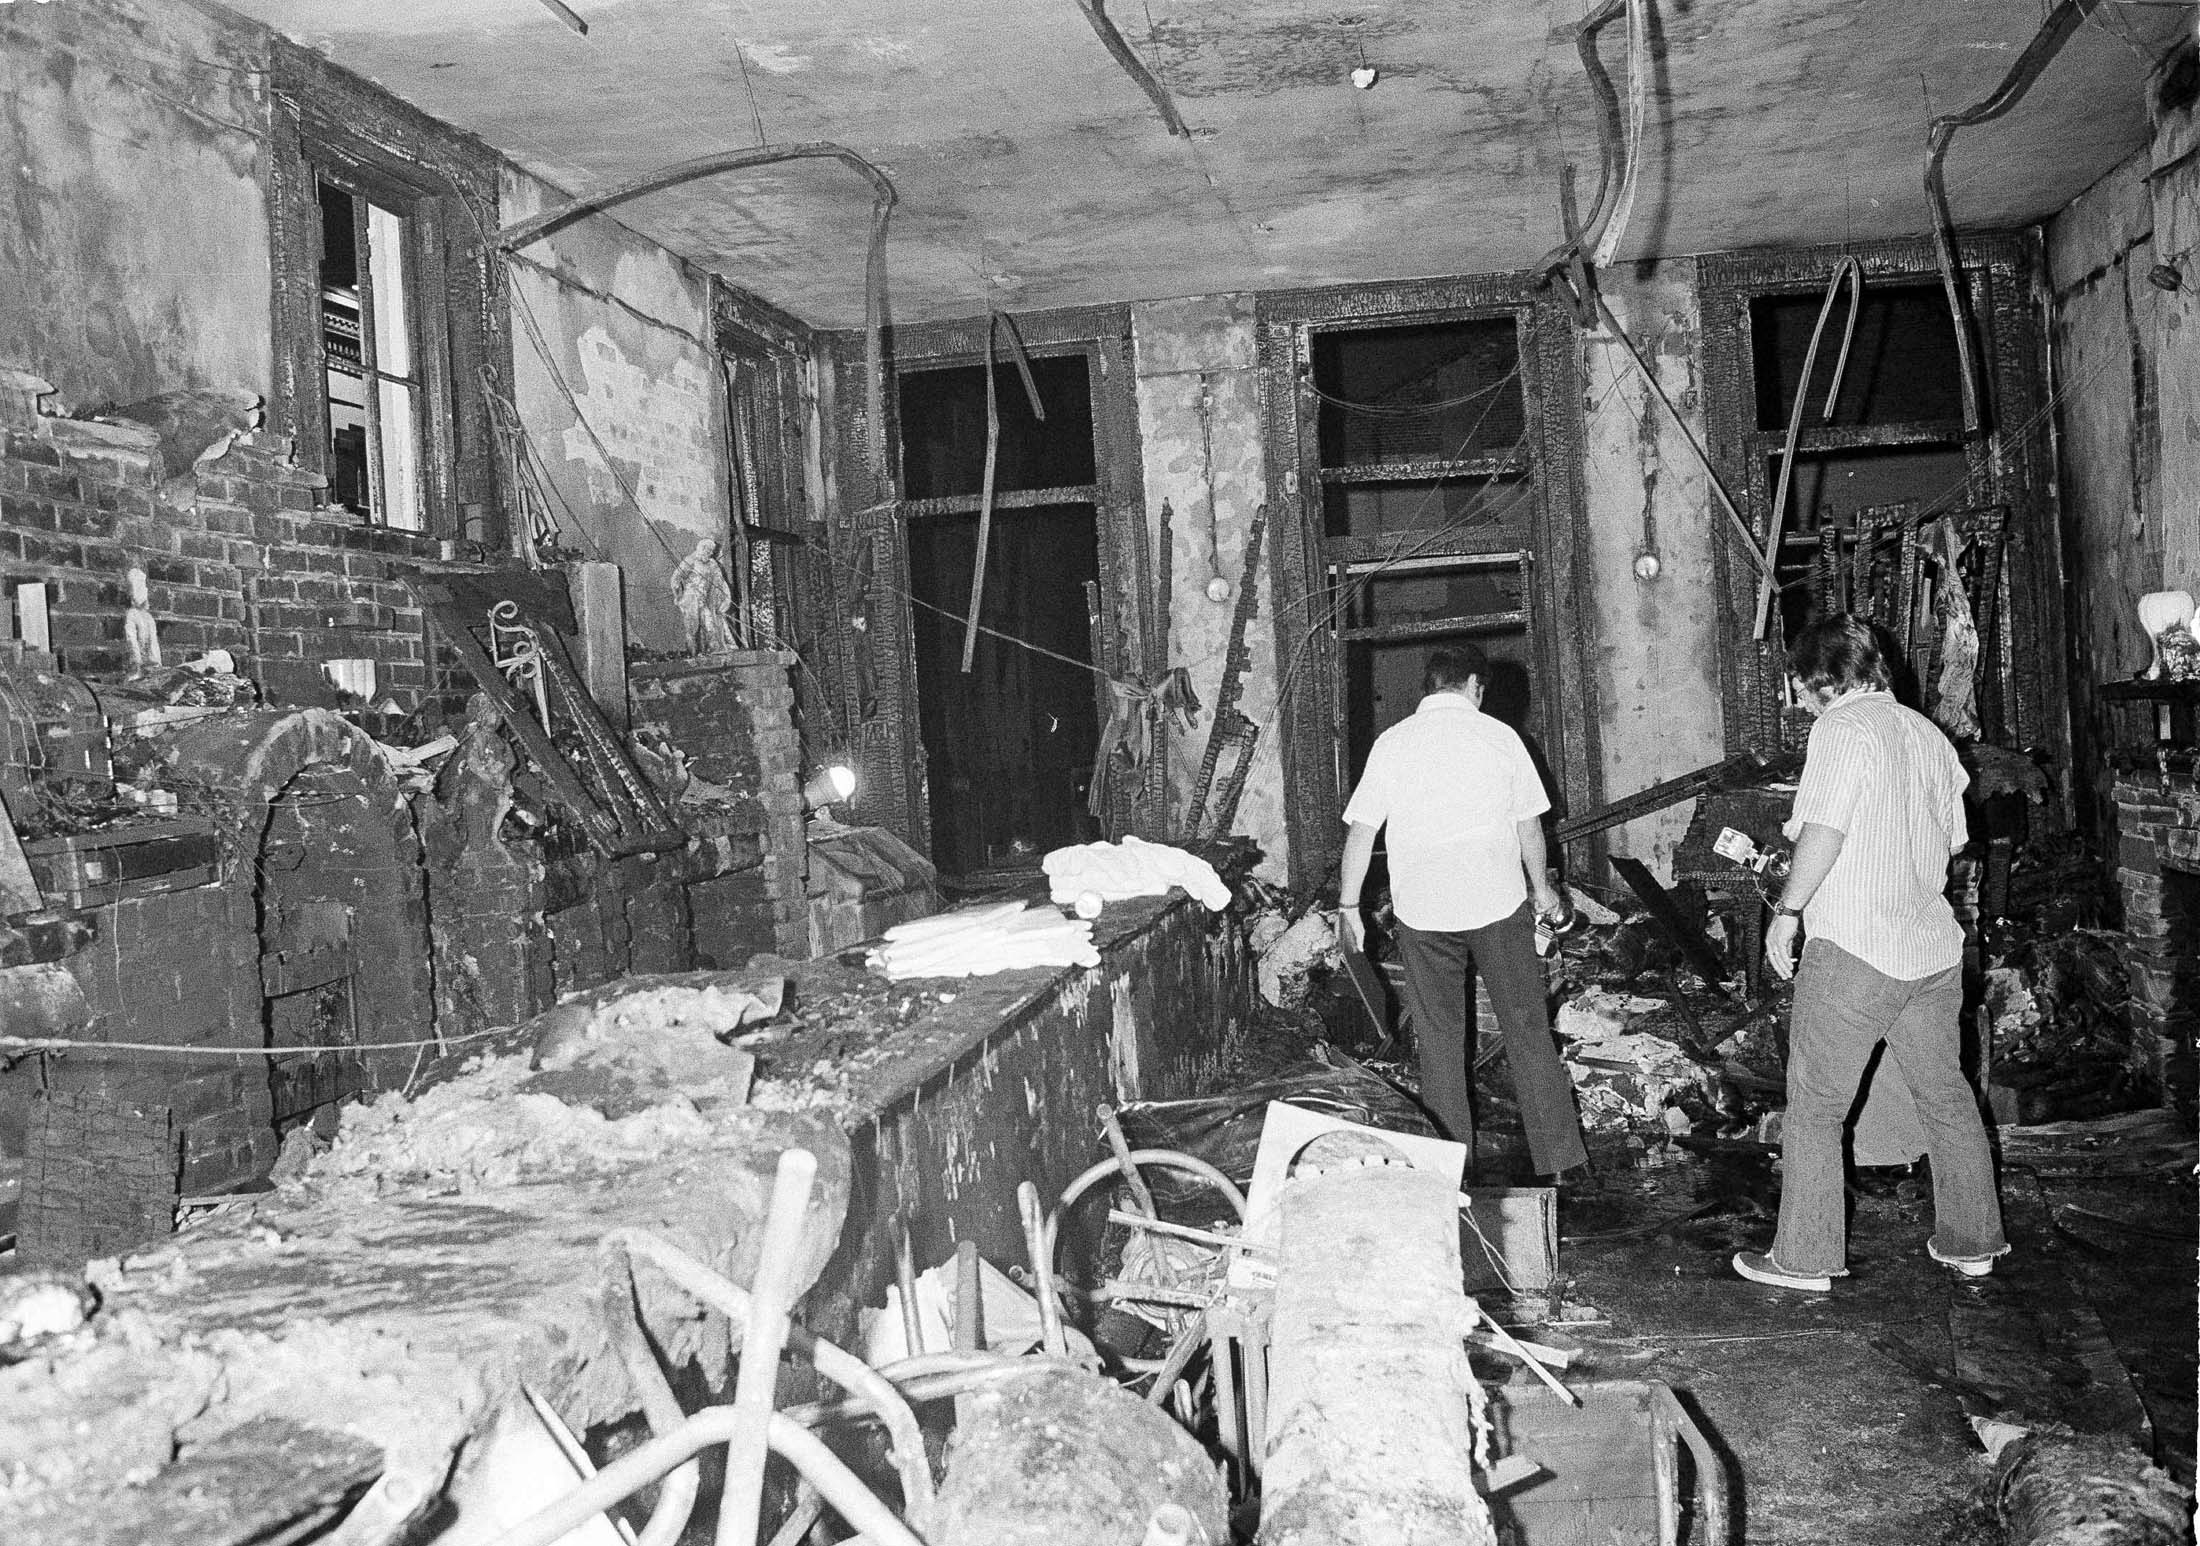 First responders found bodies in piles inside—17 in one, 4 in another, and piles of two all around. One man, Duane George Mitchell, had escaped through the back door with Rasmussen. He realized his partner Louis Horace Broussard was still inside. He raced back into the burning bar. Their bodies were found fused together.